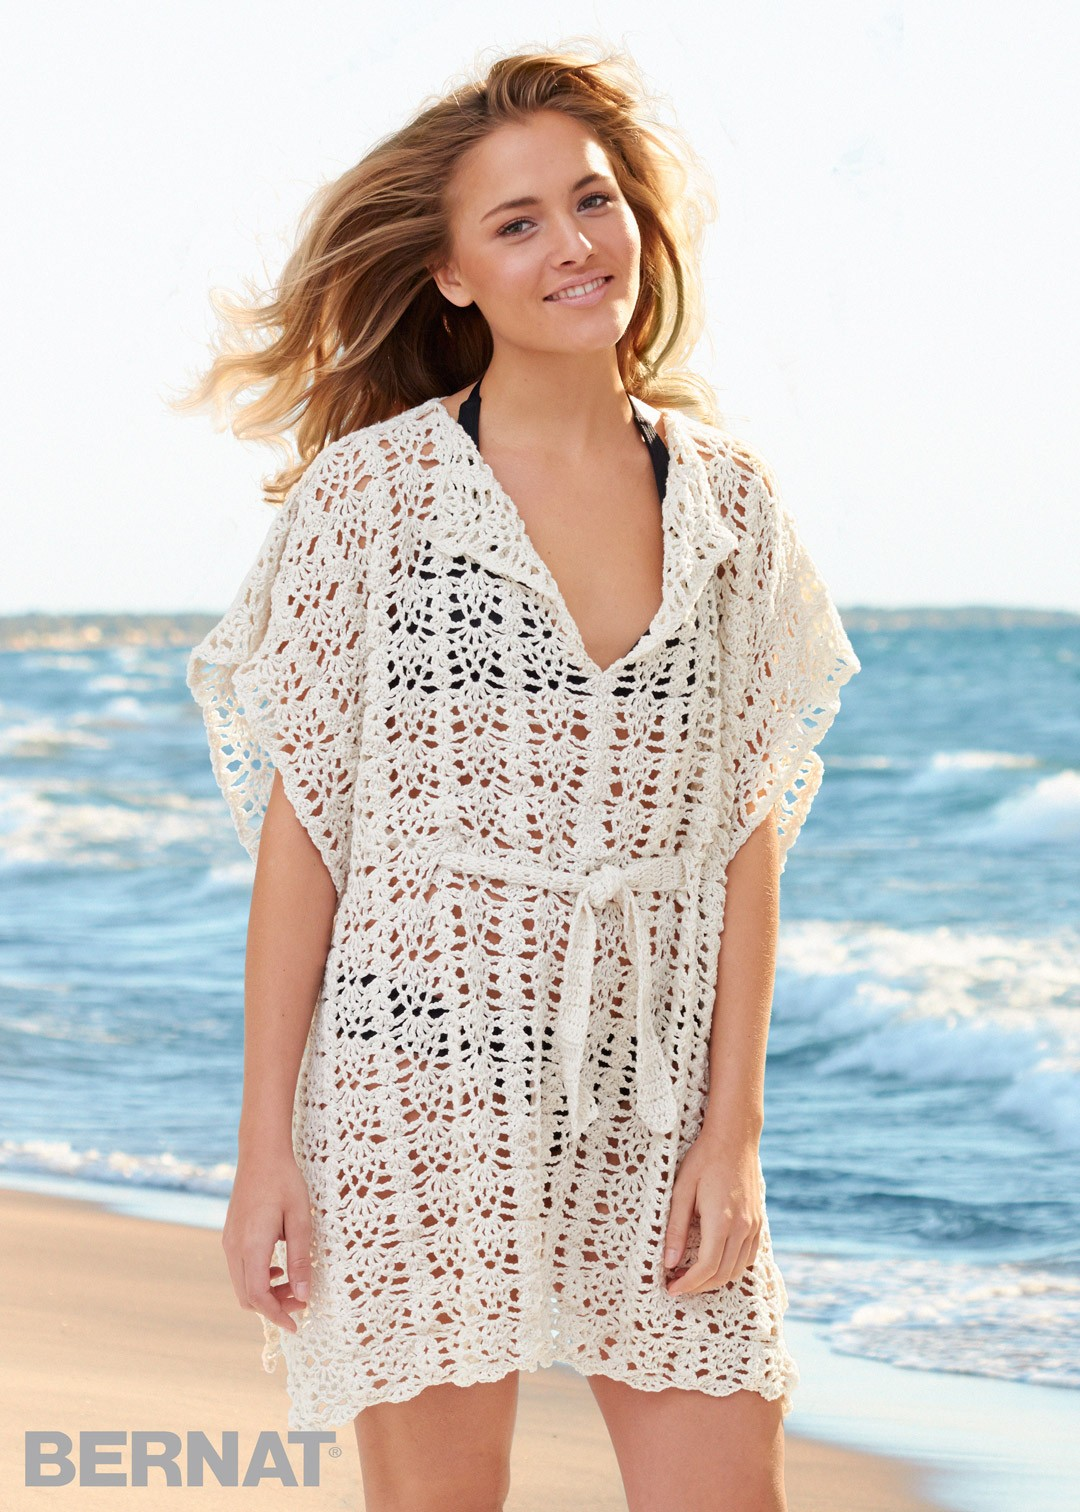 Bernat beach cover up crochet pattern yarnspirations beach cover up bankloansurffo Gallery